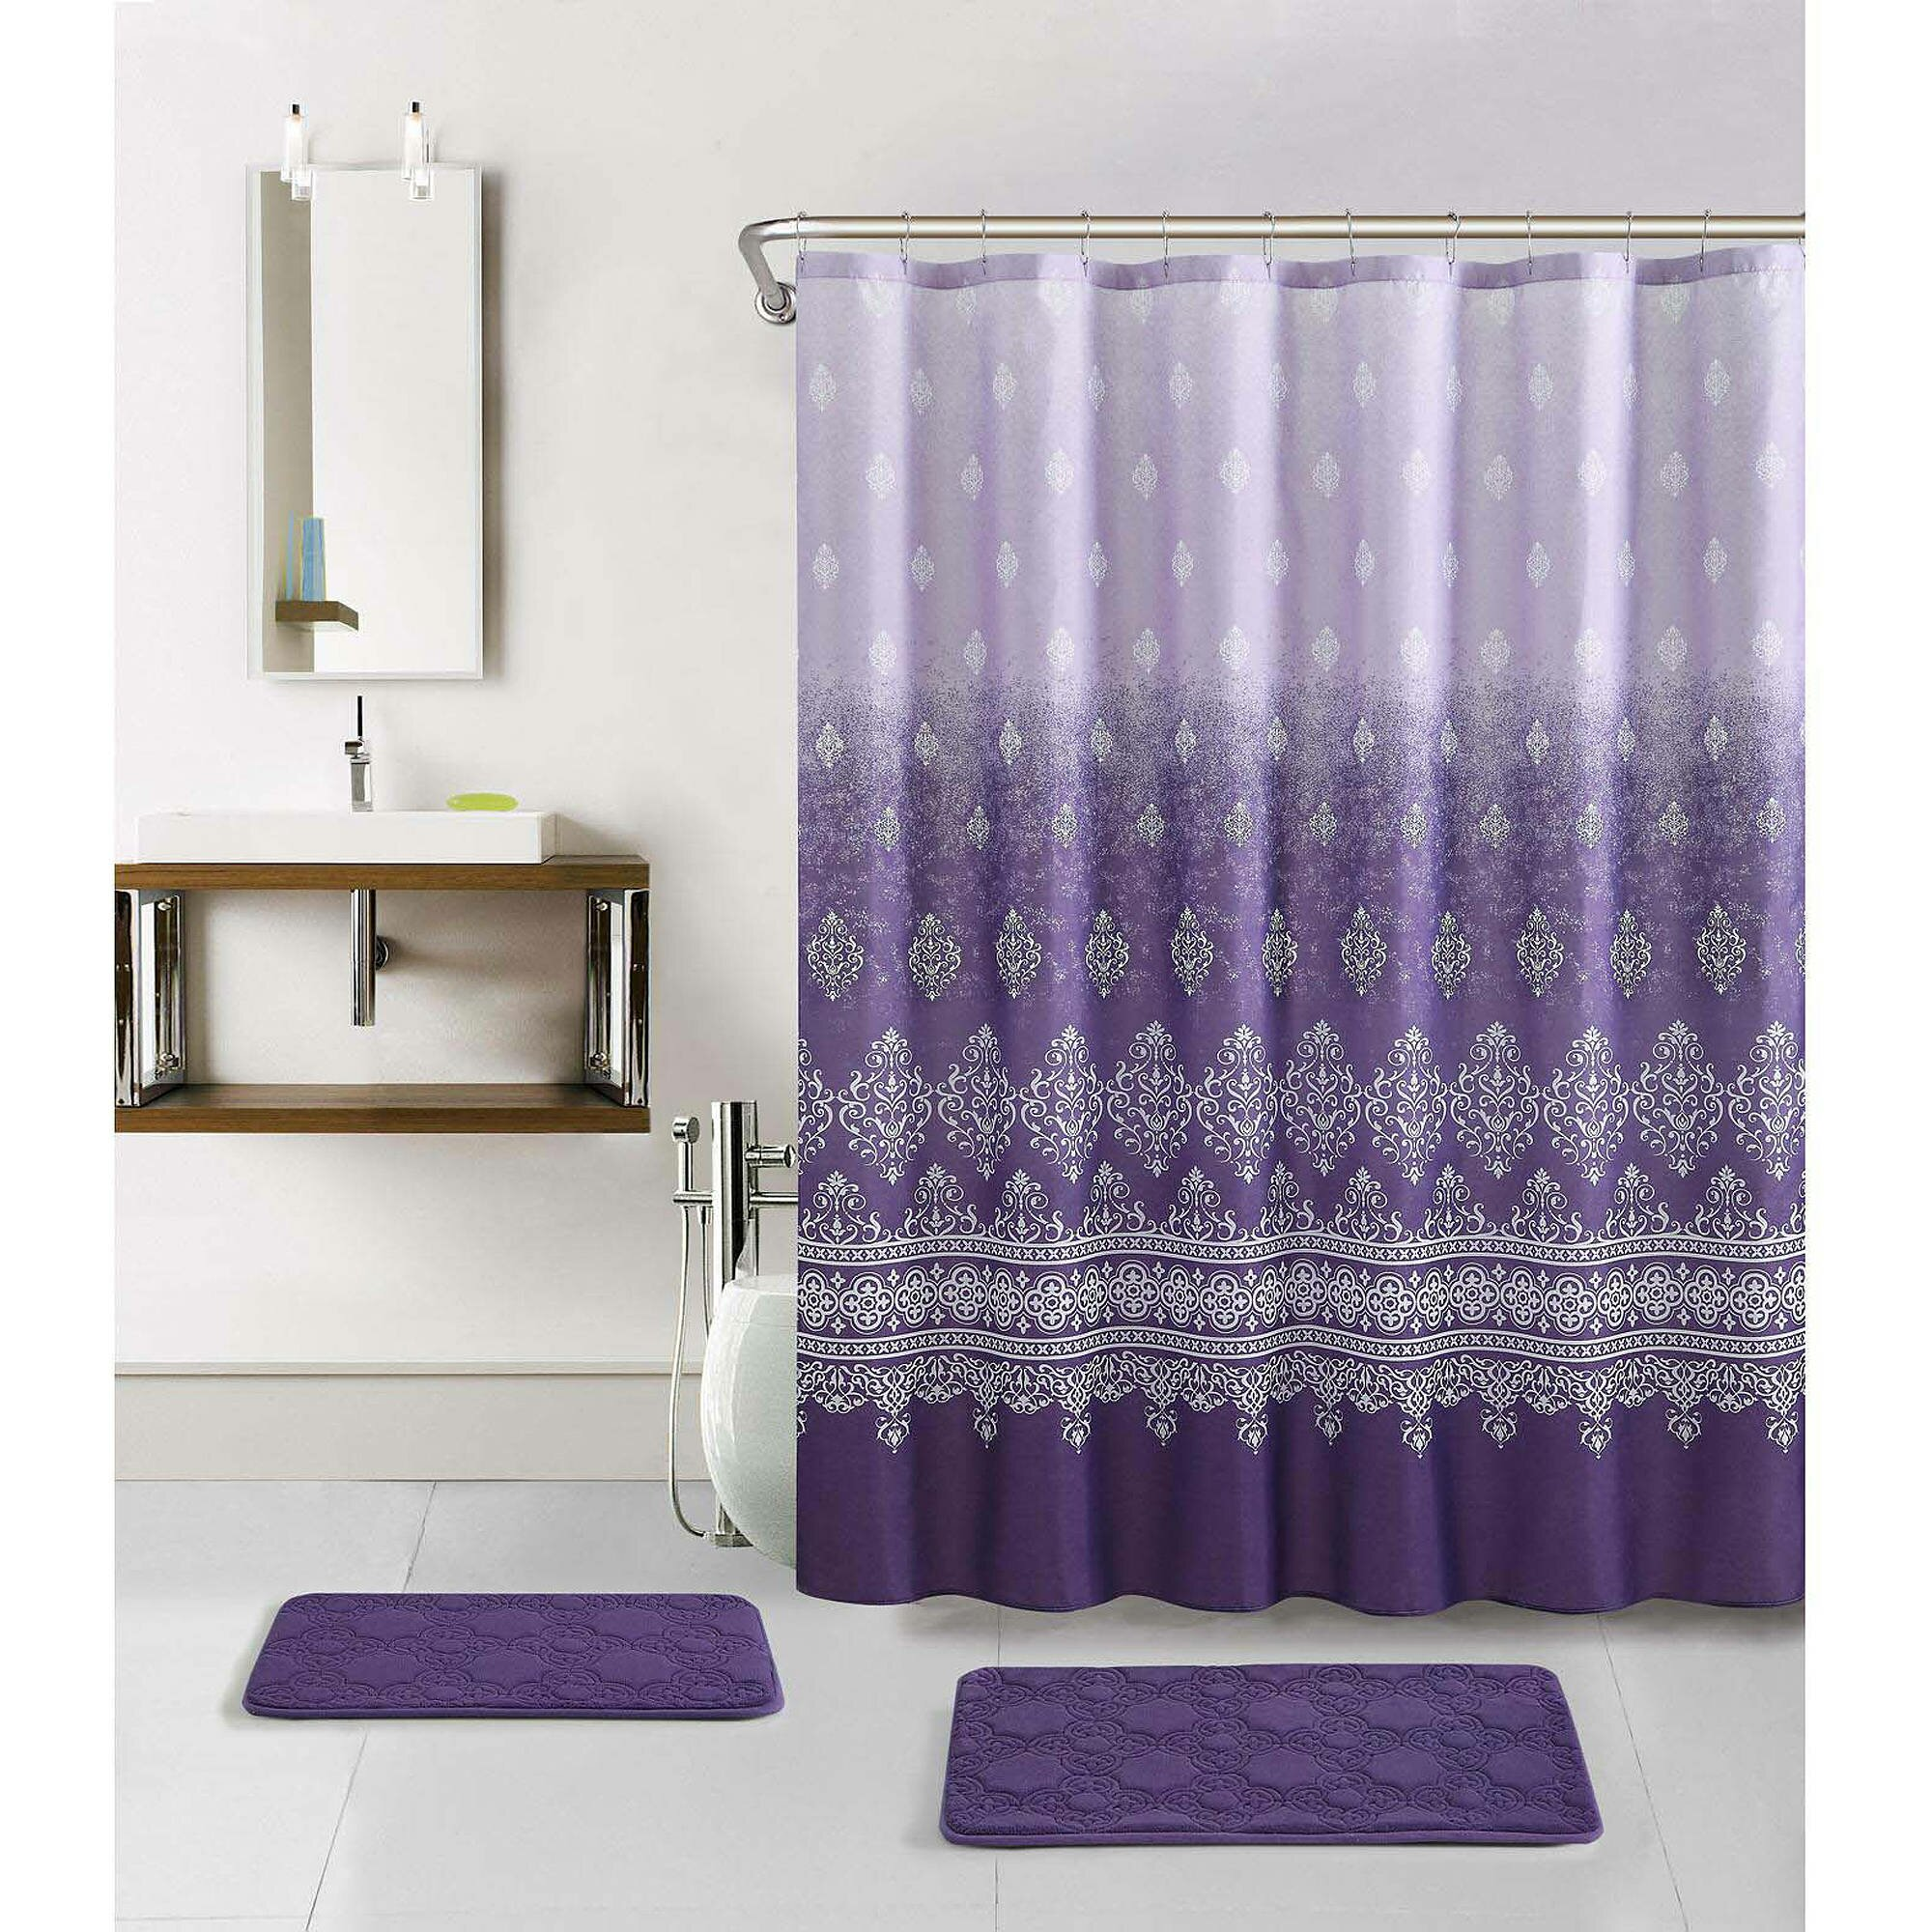 Shower Curtain Walmart | Walmart Shower Curtain | Bathroom Curtains Walmart